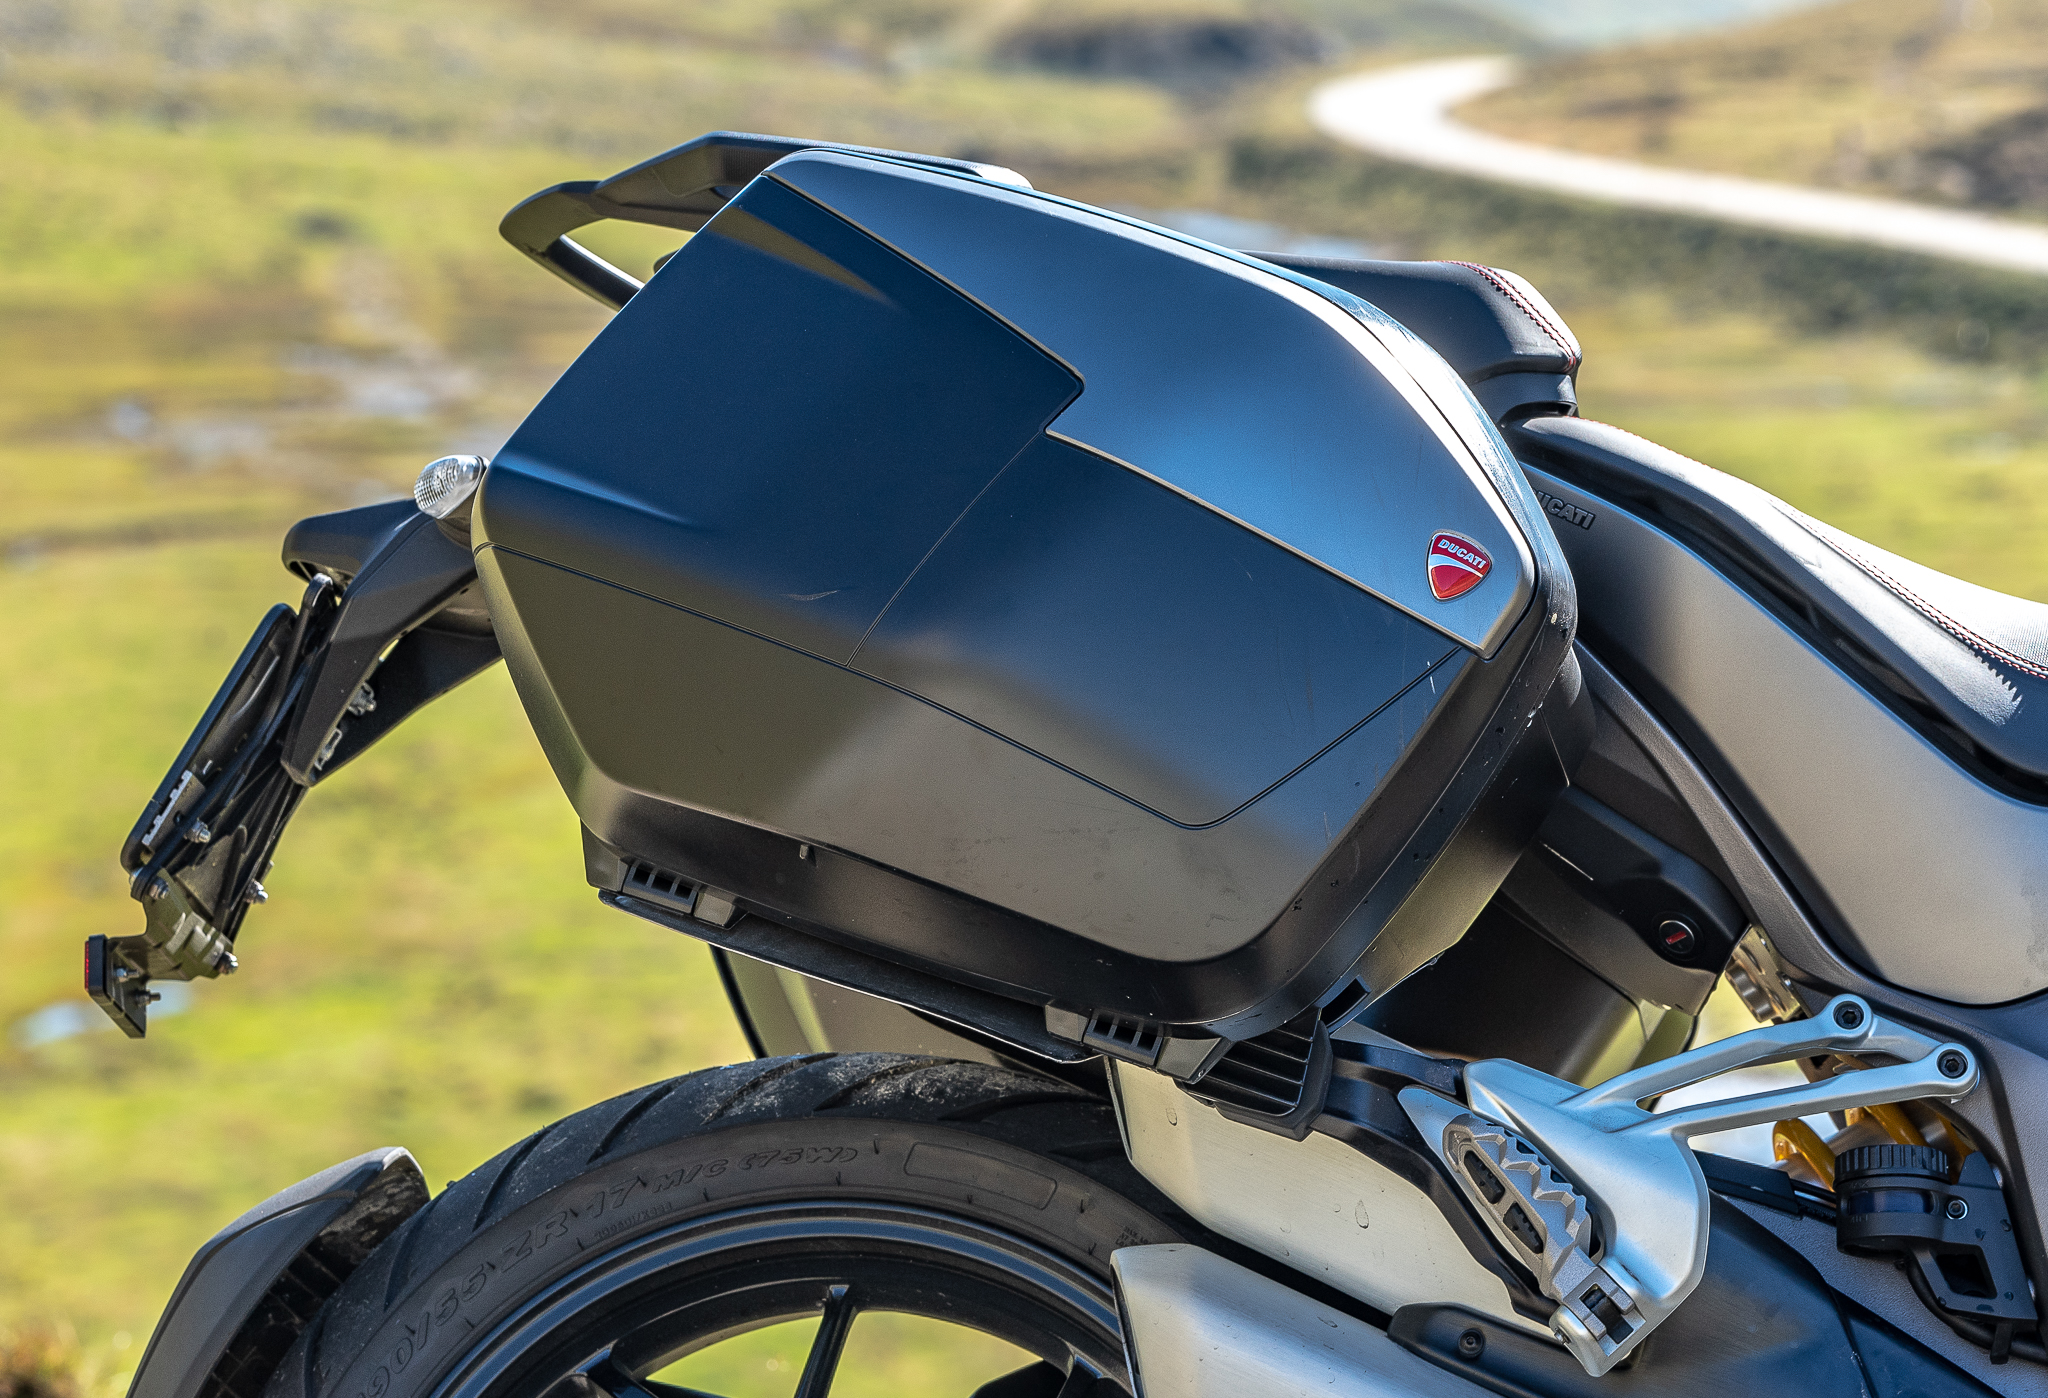 Ducati Multistrada 1260 S Grand Tour, valises